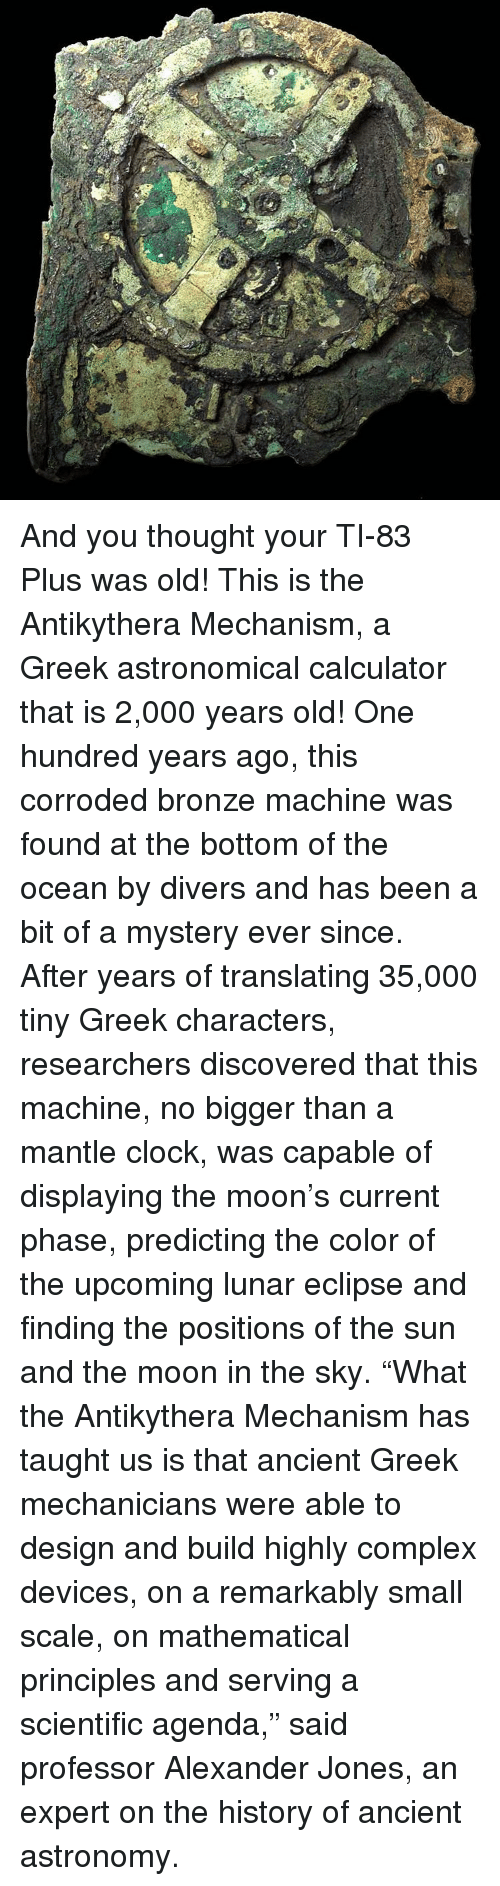 """Memes, Eclipse, and Mechanic: ㄍ  鉀 And you thought your TI-83 Plus was old! This is the Antikythera Mechanism, a Greek astronomical calculator that is 2,000 years old! One hundred years ago, this corroded bronze machine was found at the bottom of the ocean by divers and has been a bit of a mystery ever since. After years of translating 35,000 tiny Greek characters, researchers discovered that this machine, no bigger than a mantle clock, was capable of displaying the moon's current phase, predicting the color of the upcoming lunar eclipse and finding the positions of the sun and the moon in the sky. """"What the Antikythera Mechanism has taught us is that ancient Greek mechanicians were able to design and build highly complex devices, on a remarkably small scale, on mathematical principles and serving a scientific agenda,"""" said professor Alexander Jones, an expert on the history of ancient astronomy."""